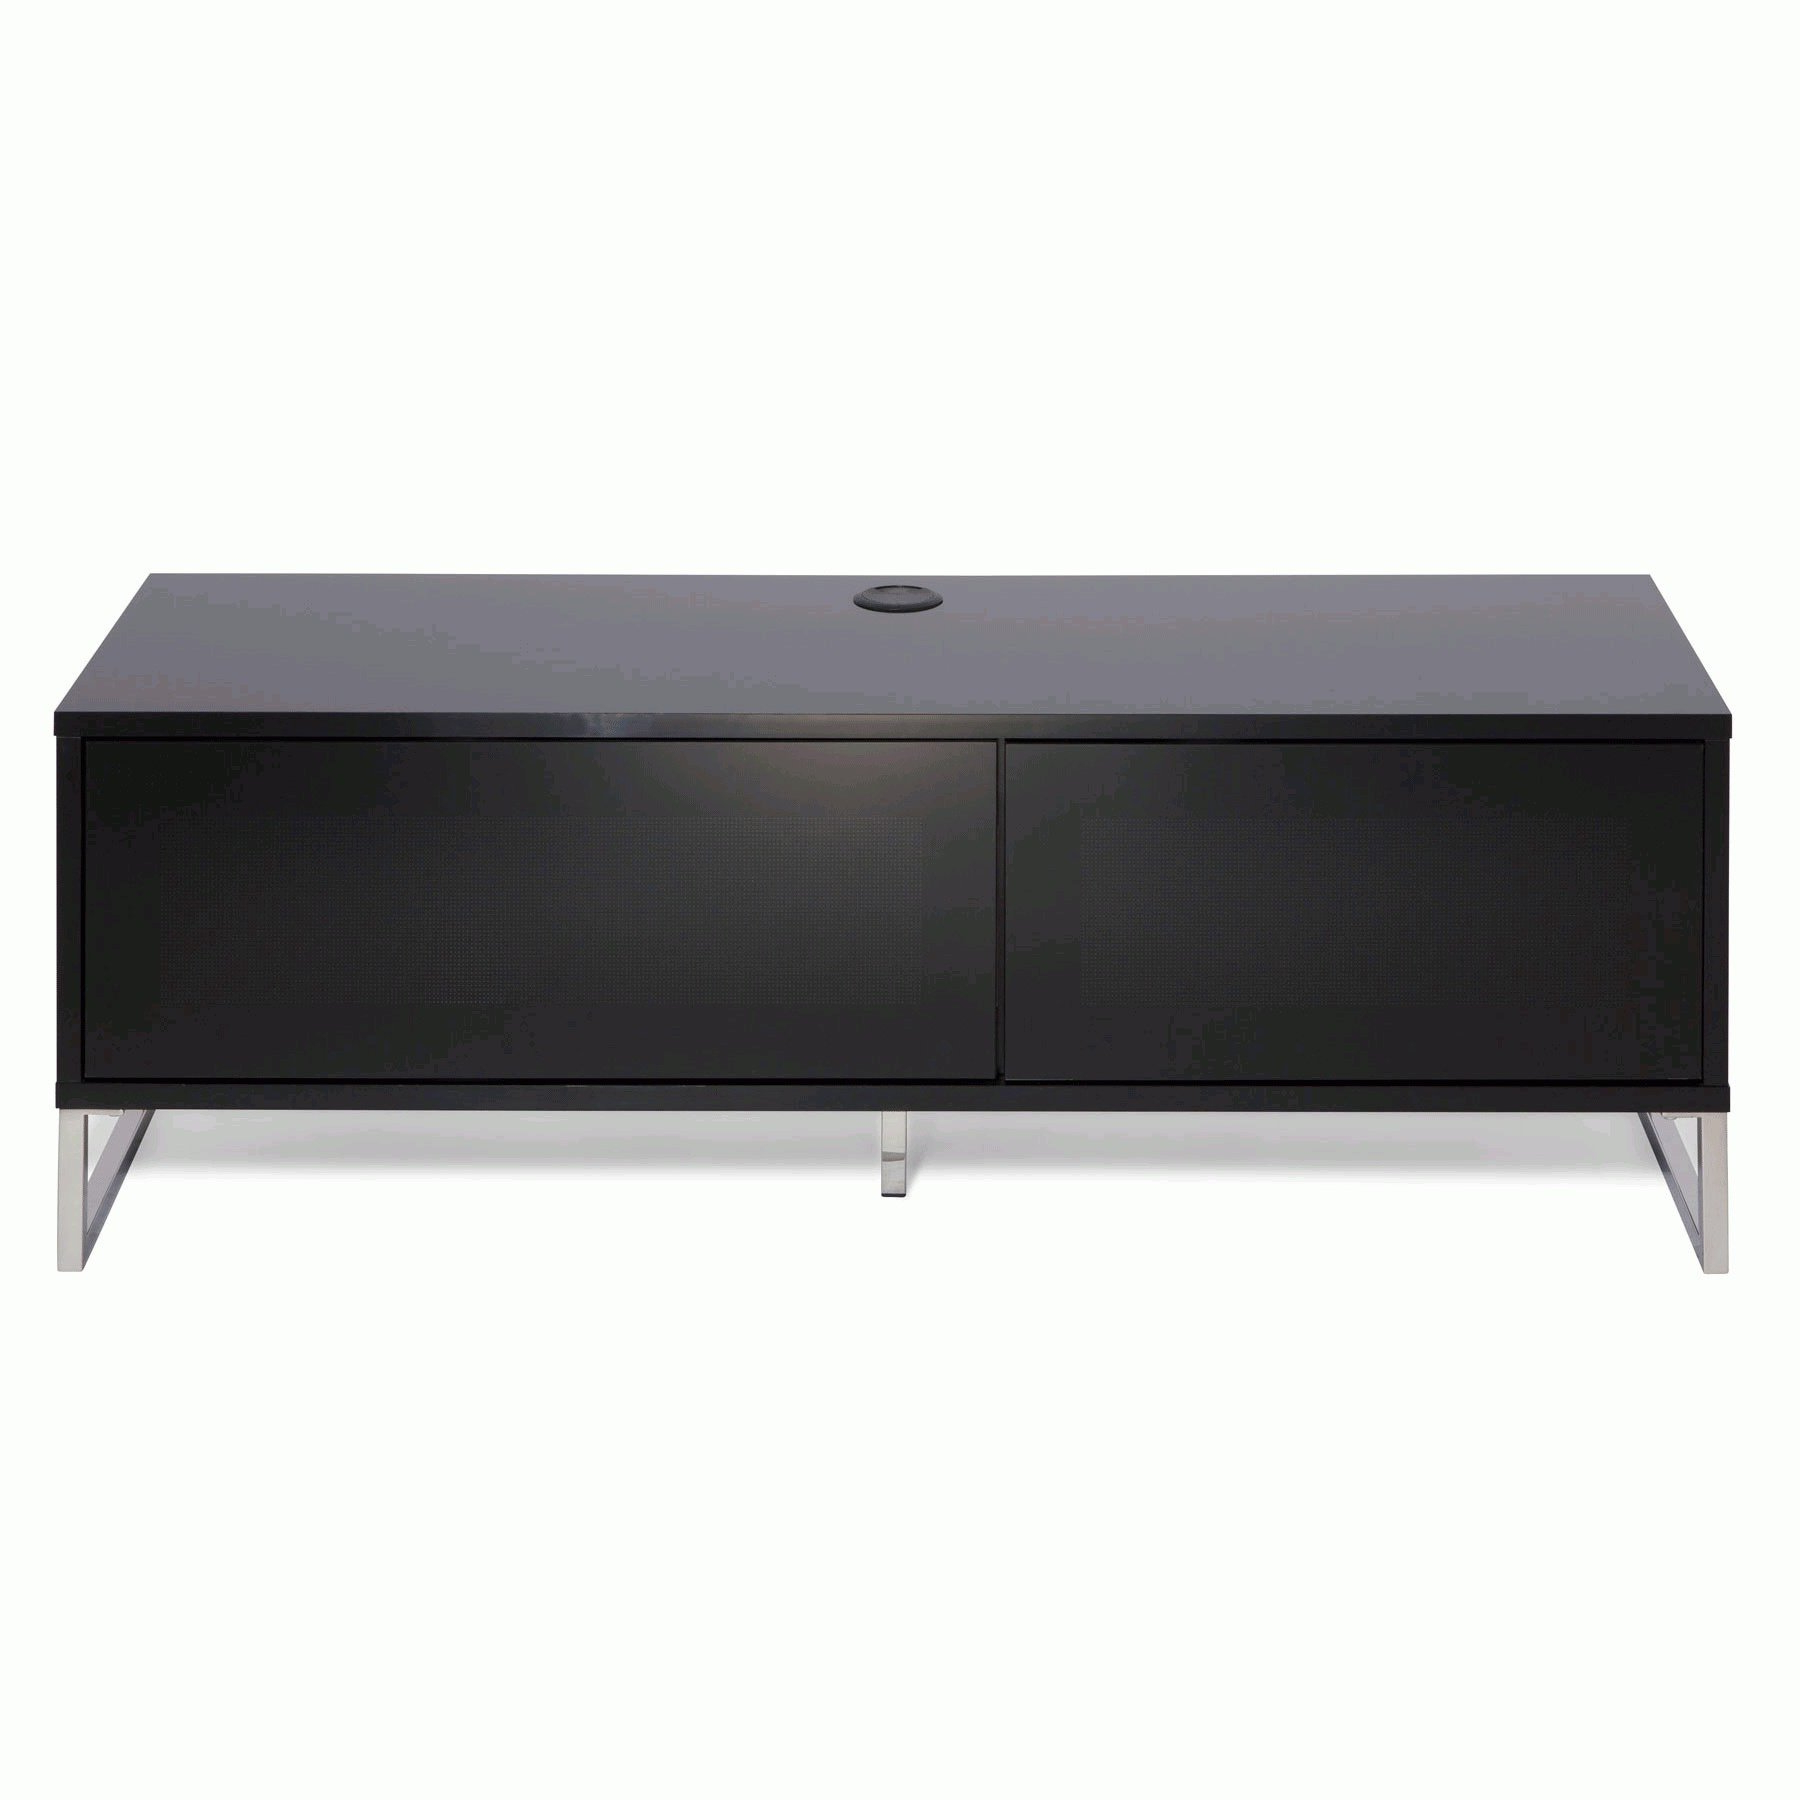 """Well Known Alphason Helium 120cm Black Tv Stand For Up To 50"""" Tvs With Regard To Tv Stands For Tvs Up To 50"""" (View 14 of 25)"""